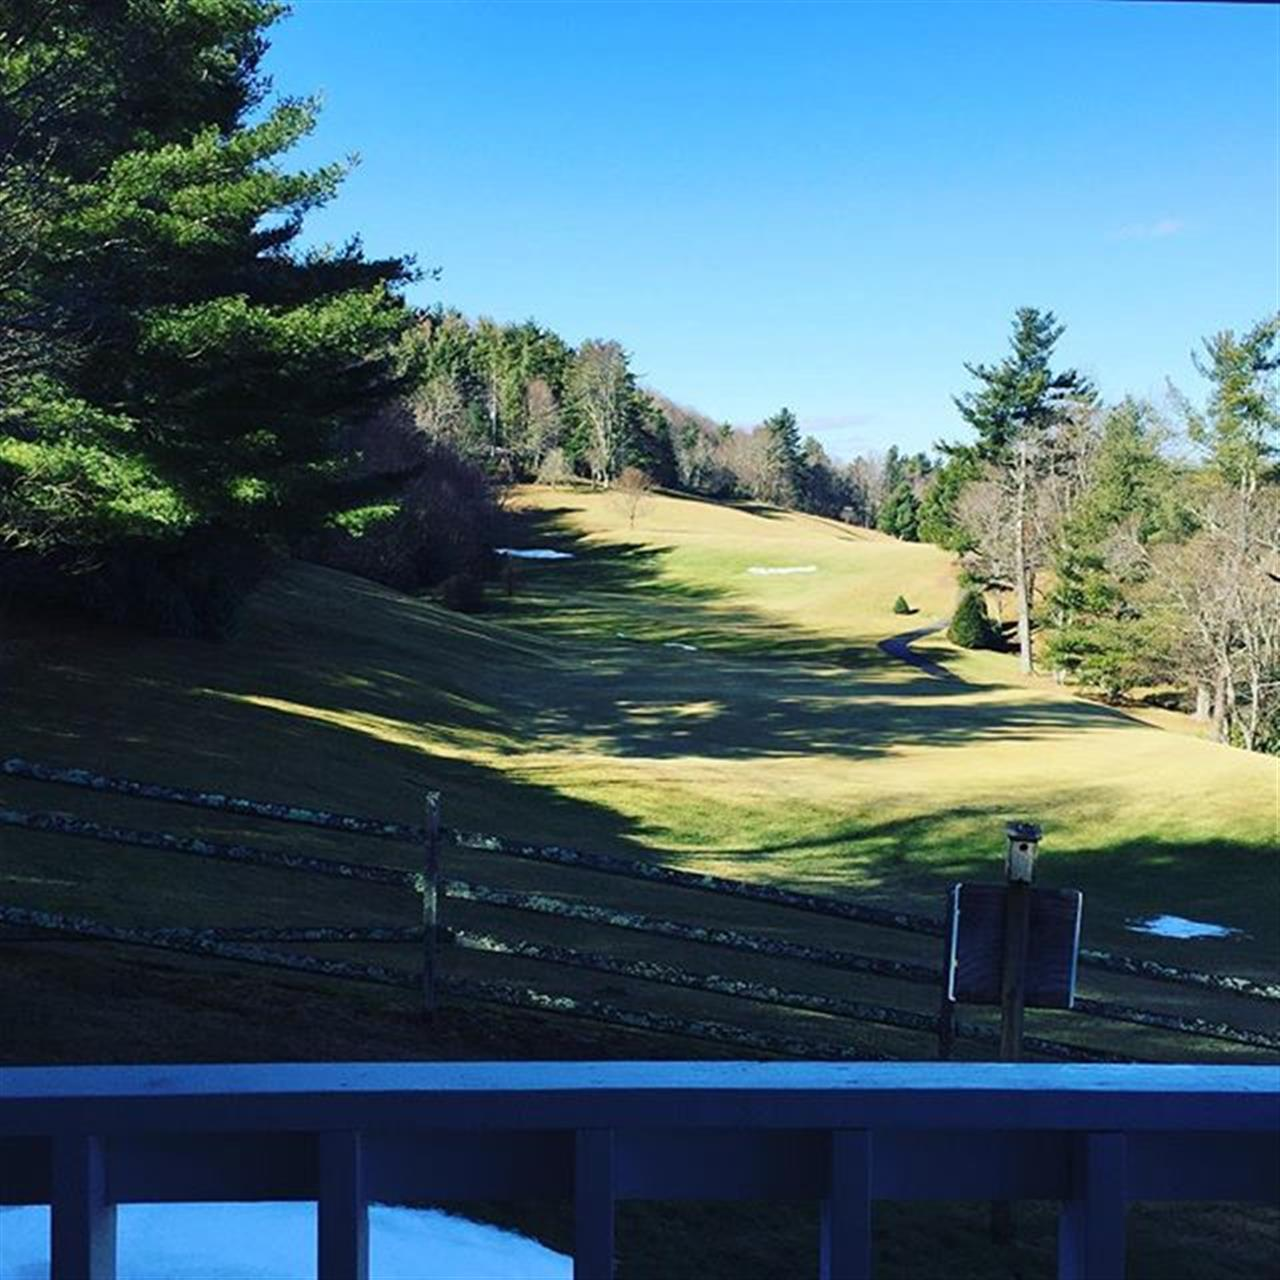 Beautiful day for showing property in #boonenc and #BlowingRockNC #leadingrelocal